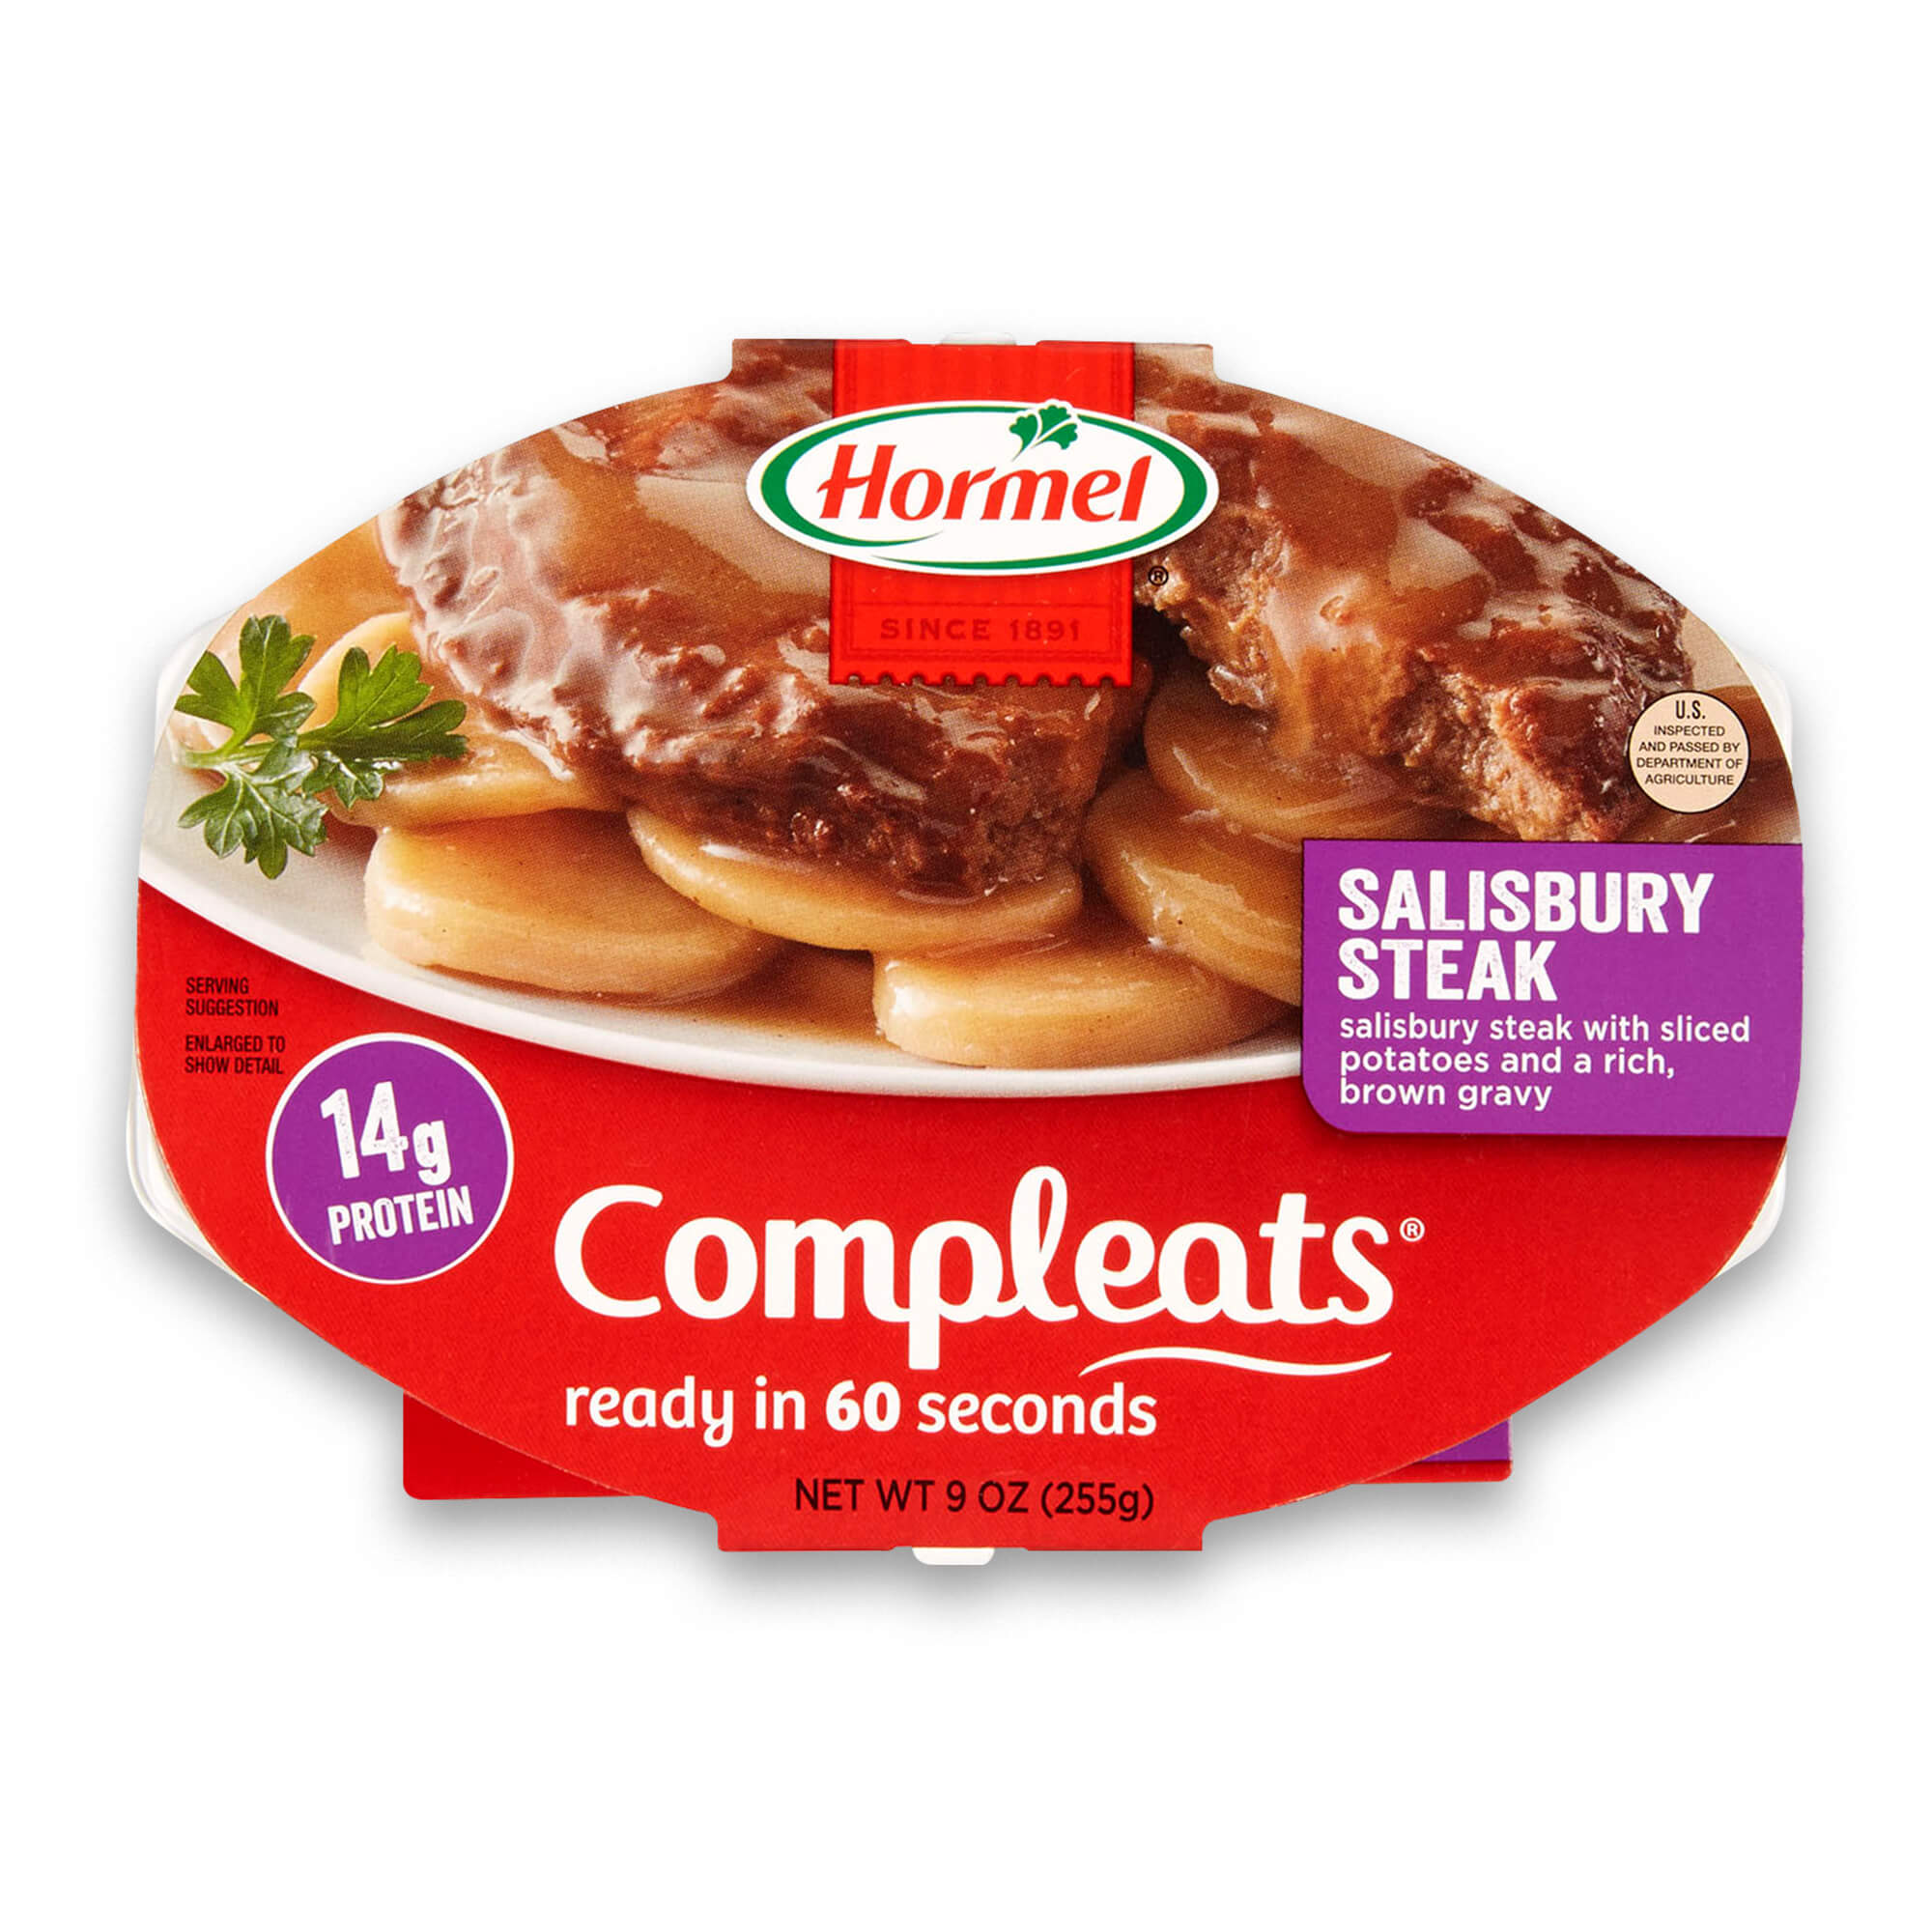 Hormel Compleats Salisbury Steak, 9 Ounce